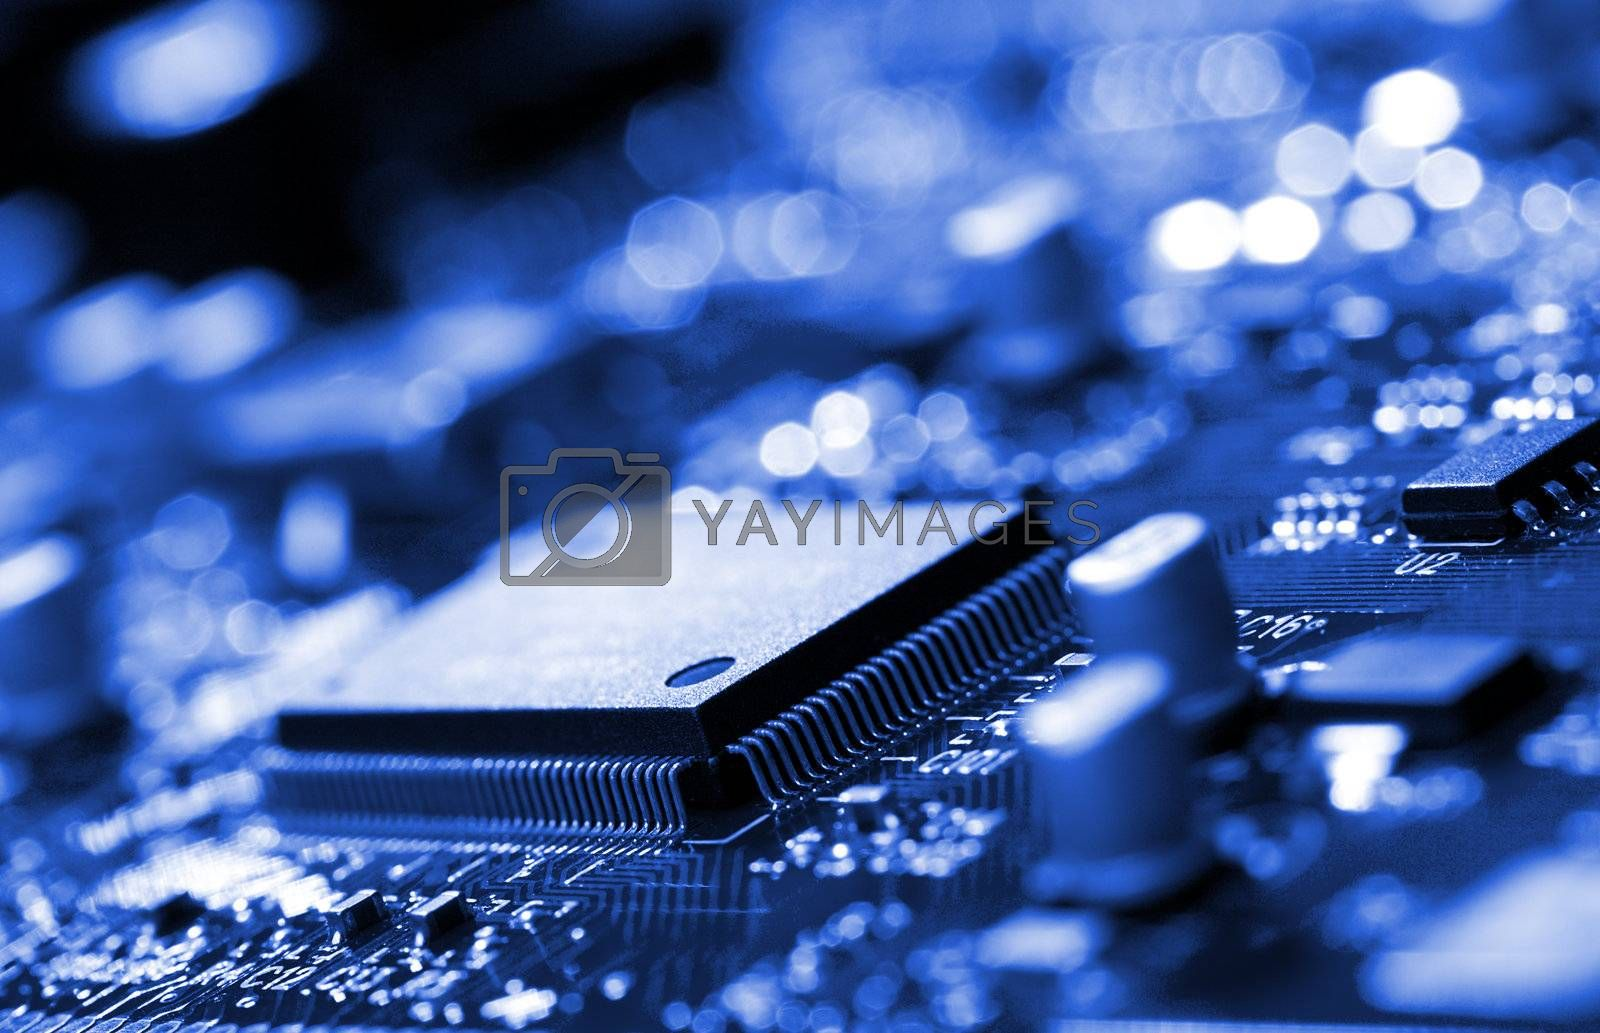 Royalty free image of microchip on blue circuit board by Alekcey